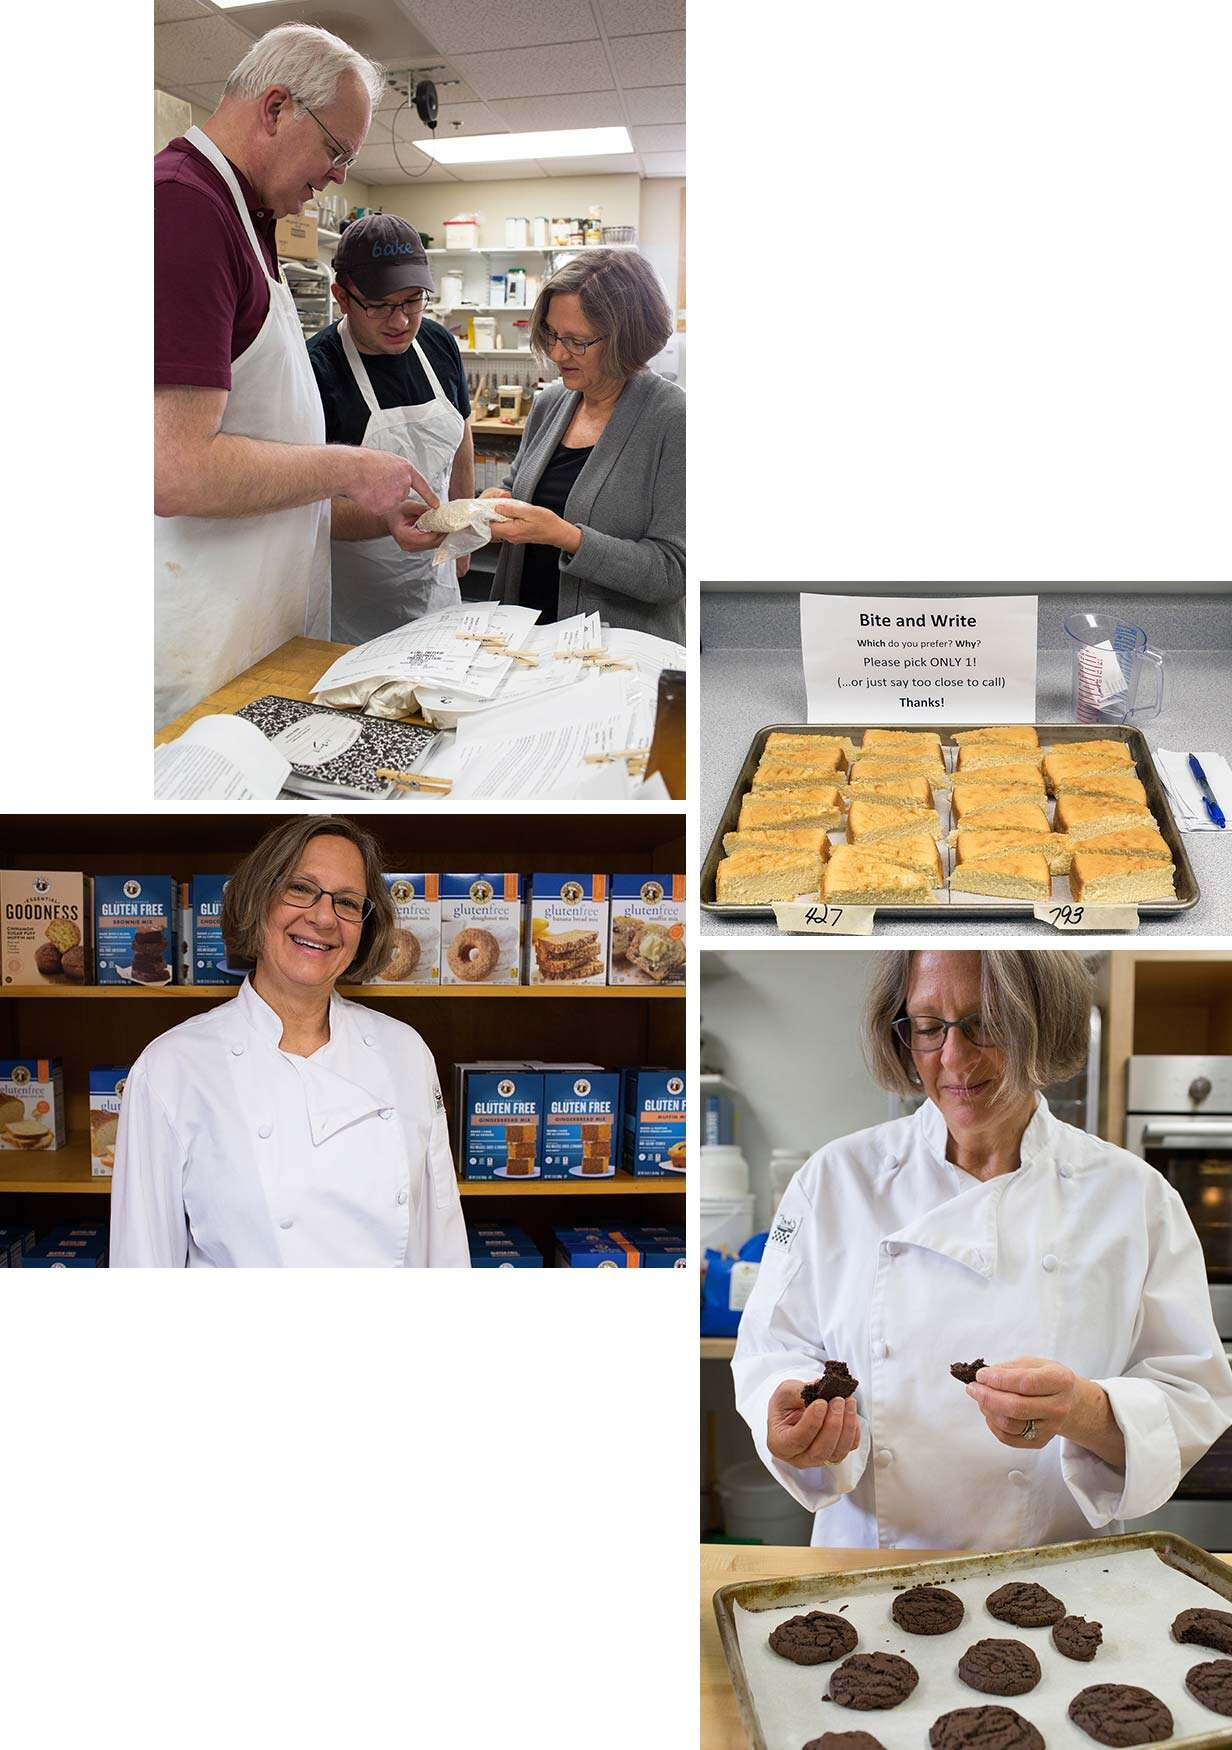 Sue Gray, head of King Arthur Flour's research and development team